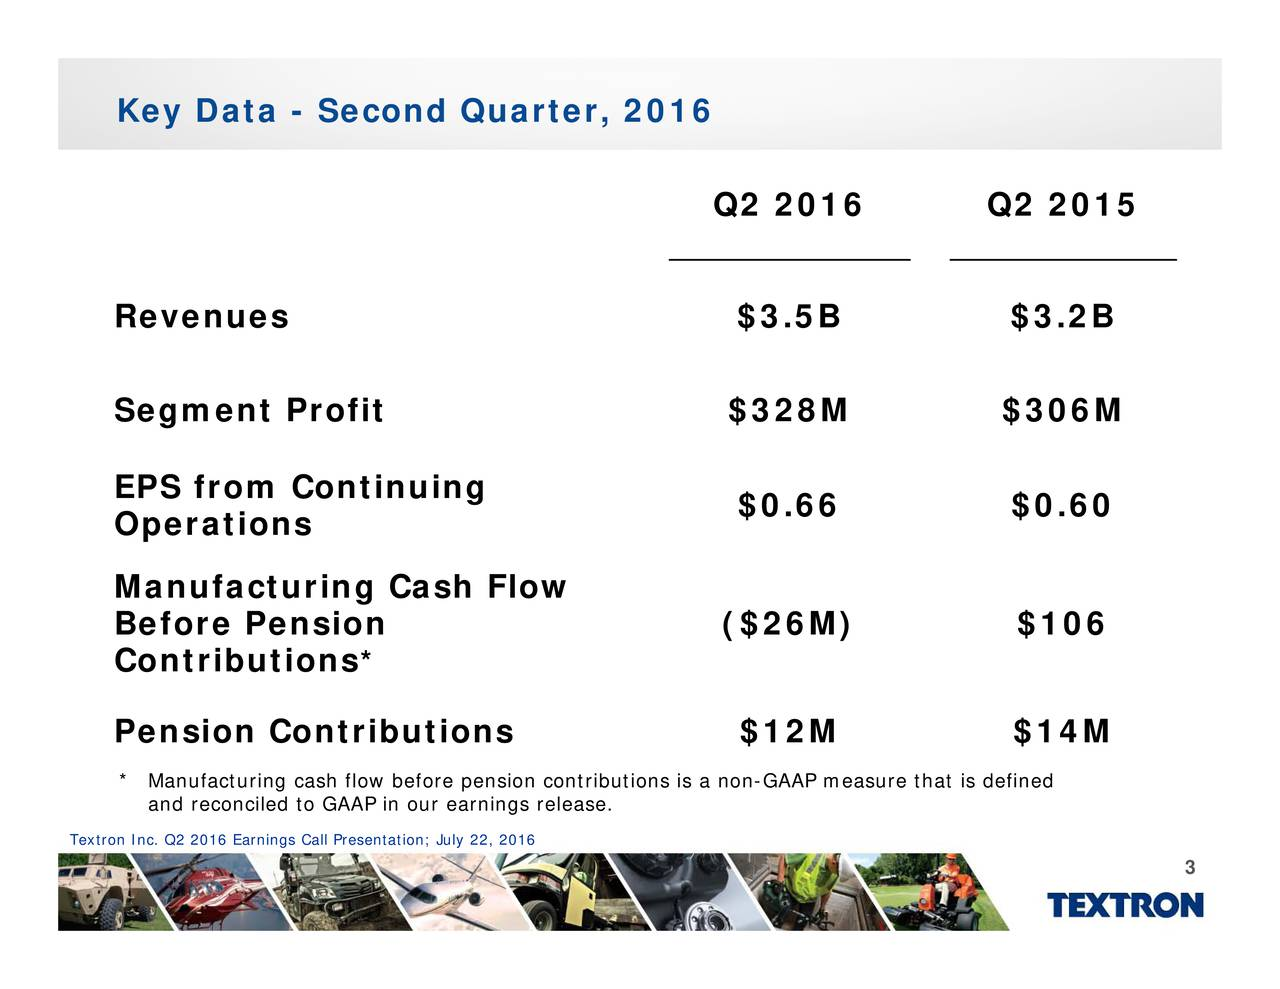 $0.66 ($26M) $0.60 $106 Q2 2016 Q2 2015 butions is a non-GAAP measure that is defined * and reconciled to GAAP in our earnings release. Key Data - RevenSegmEenteratefonePension Contributionsh flow before pension contri Textron Inc. Q2 2016 Earnings Call Presentation; July 22, 2016